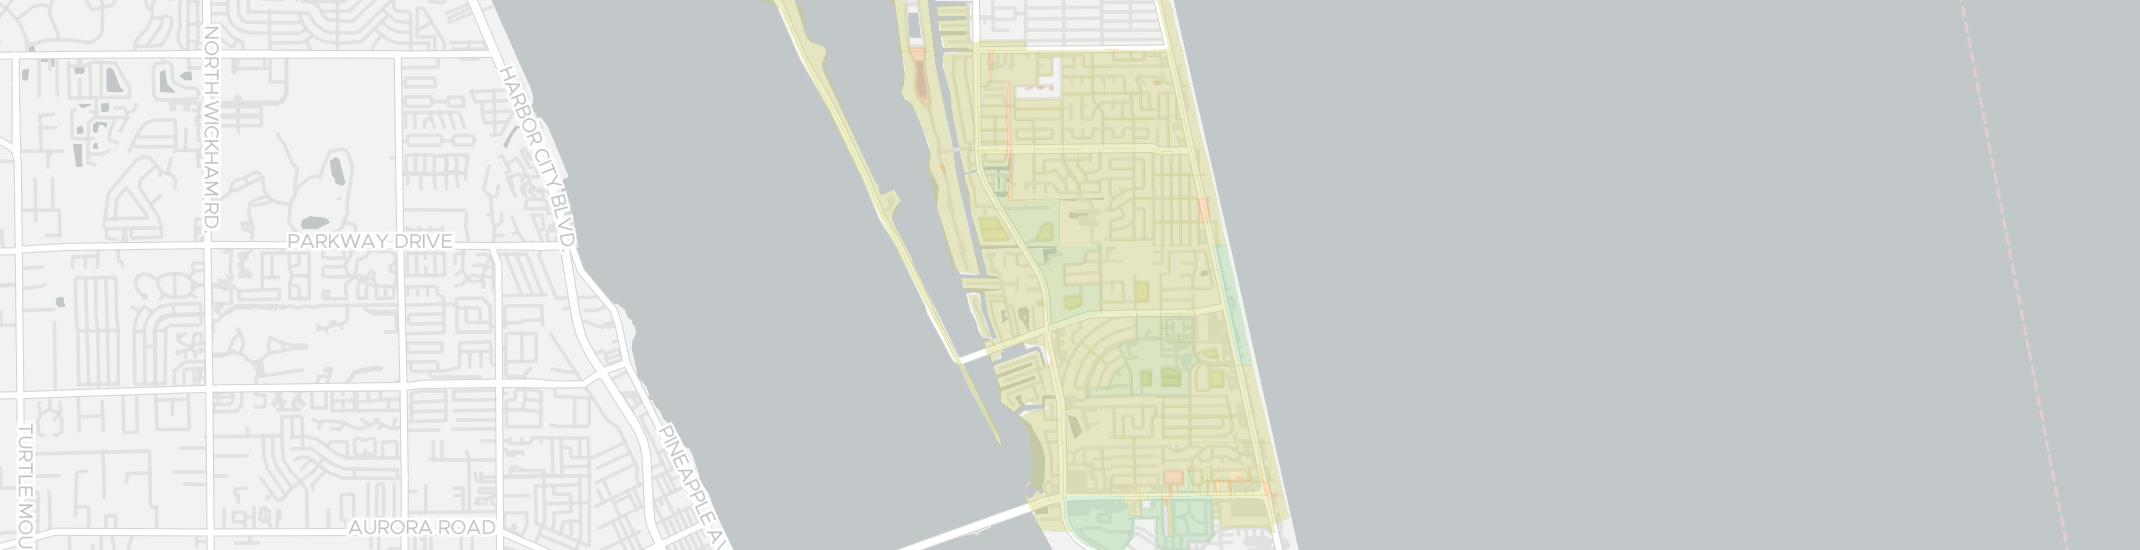 Indian Harbour Beach Internet Competition Map. Click for interactive map.